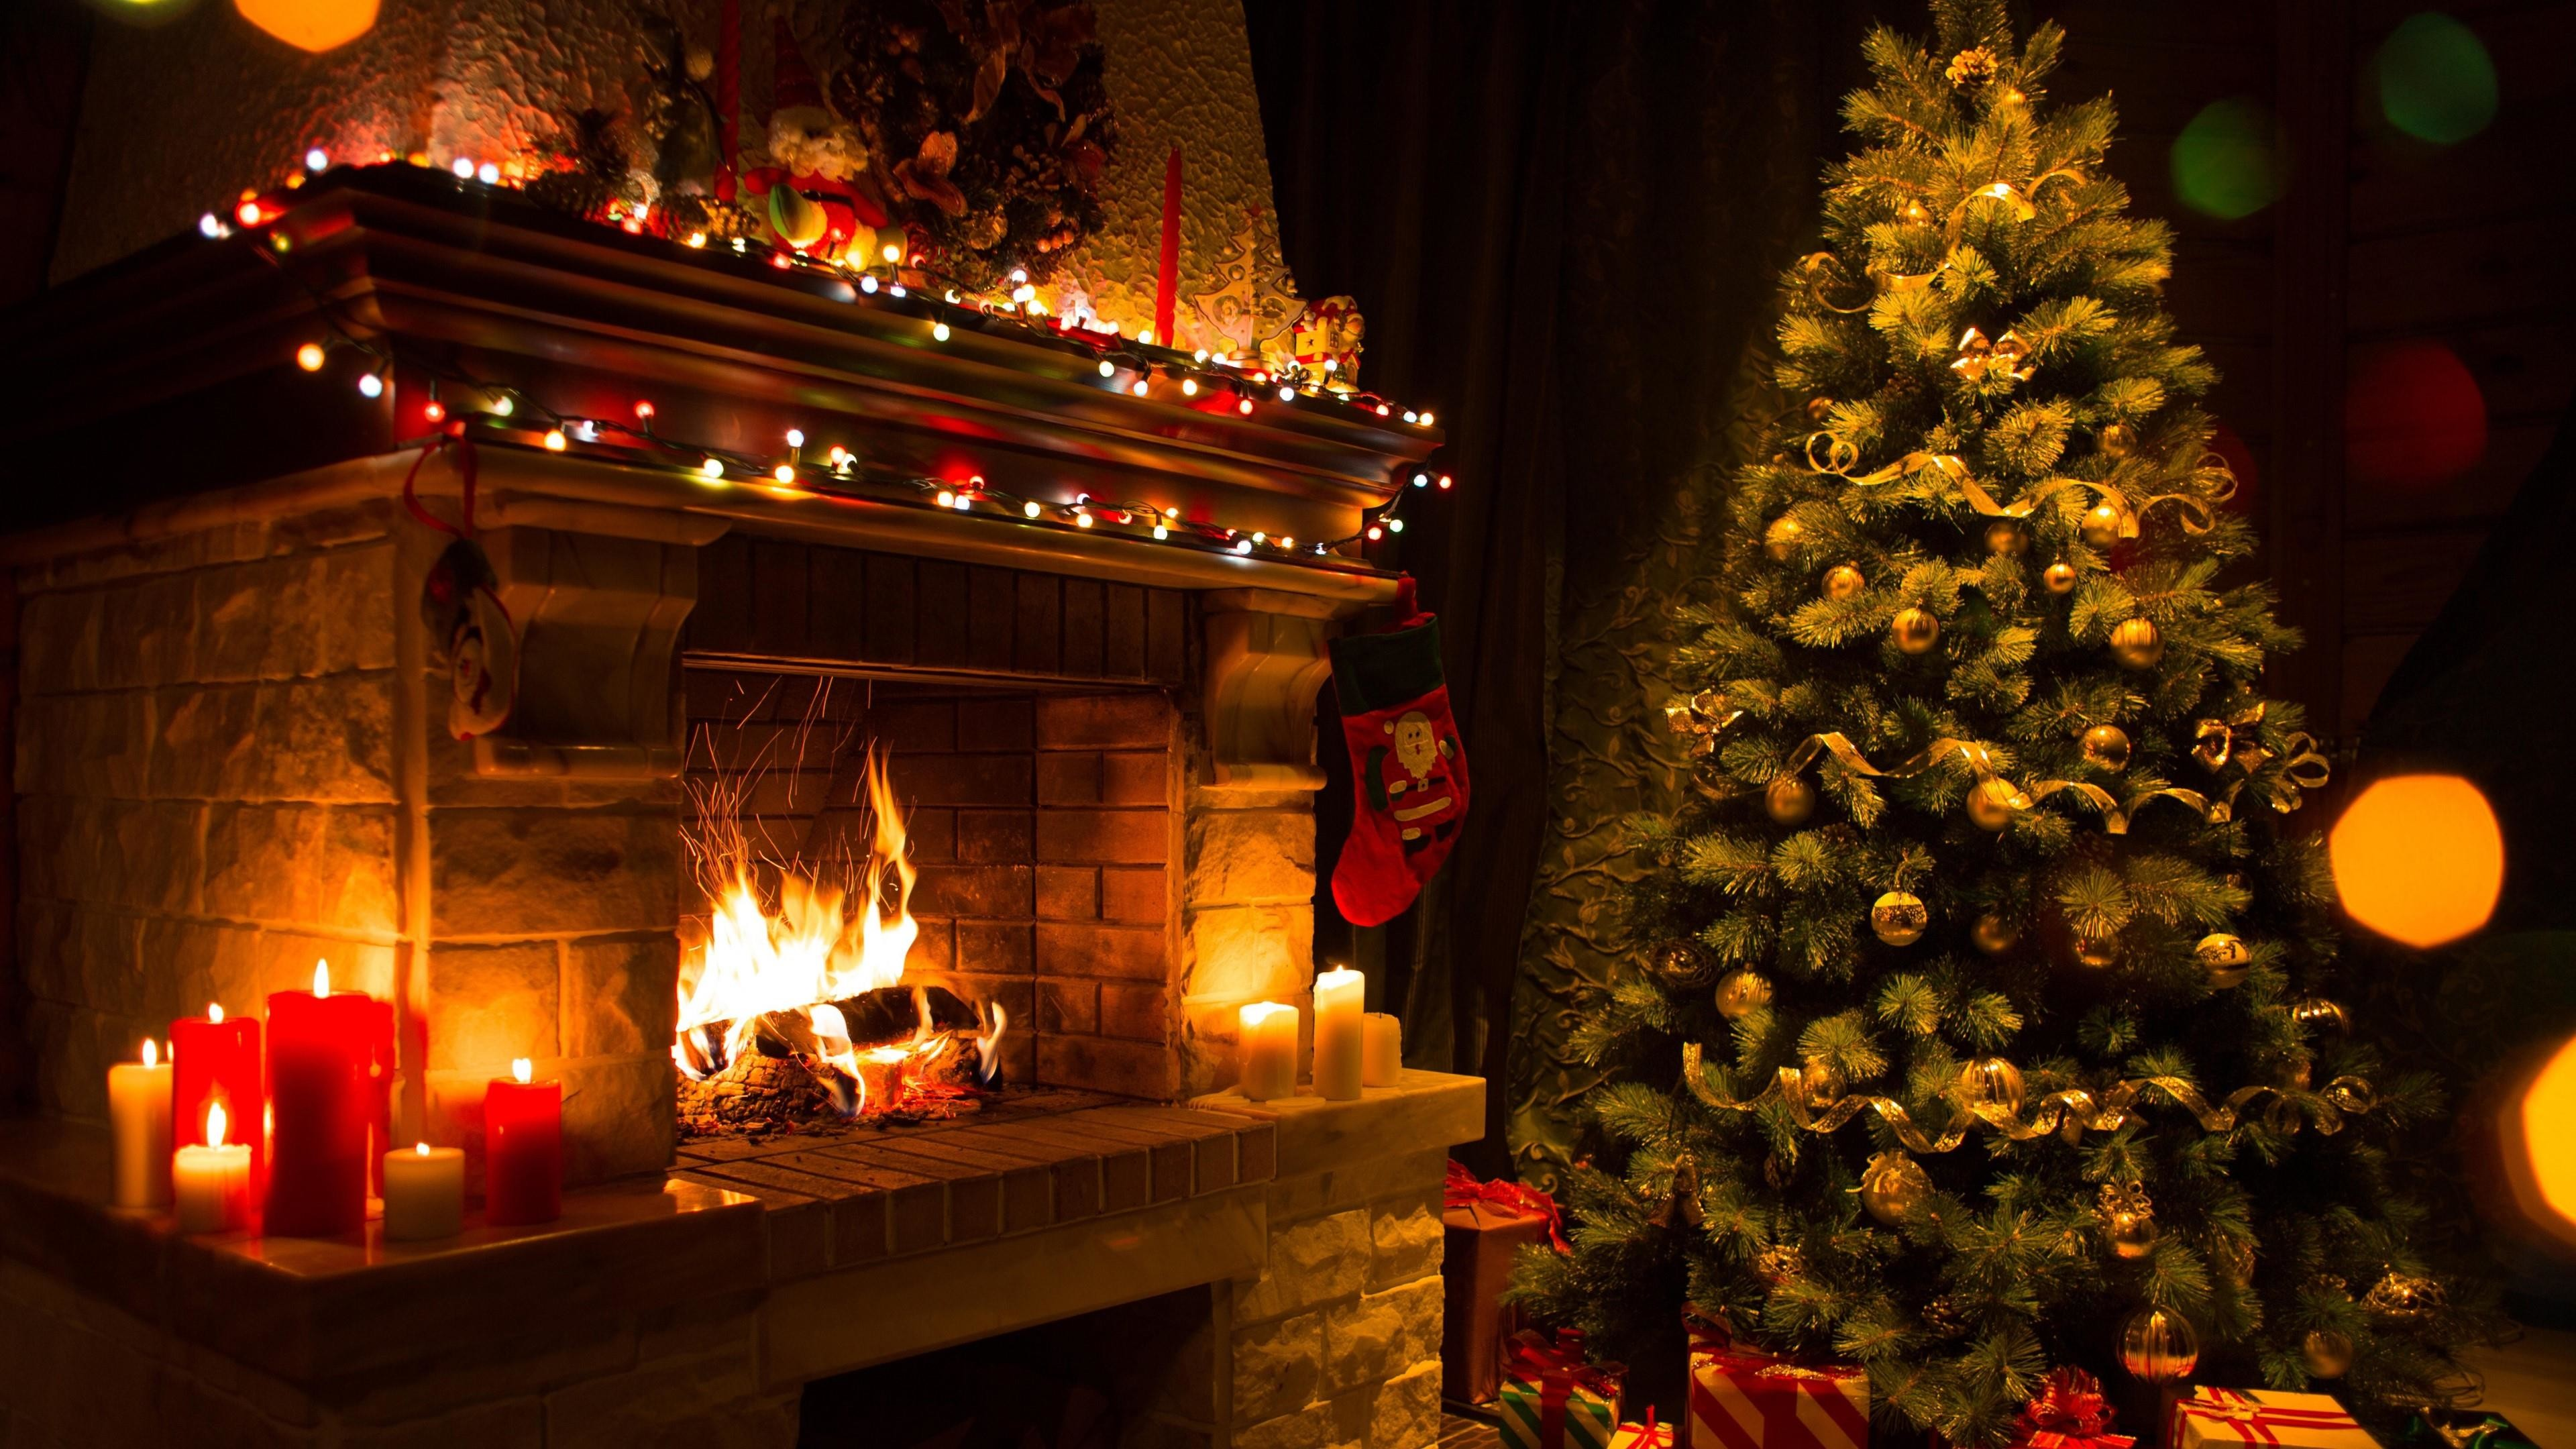 Christmas Fireplace Wallpaper 57 images 3840x2160